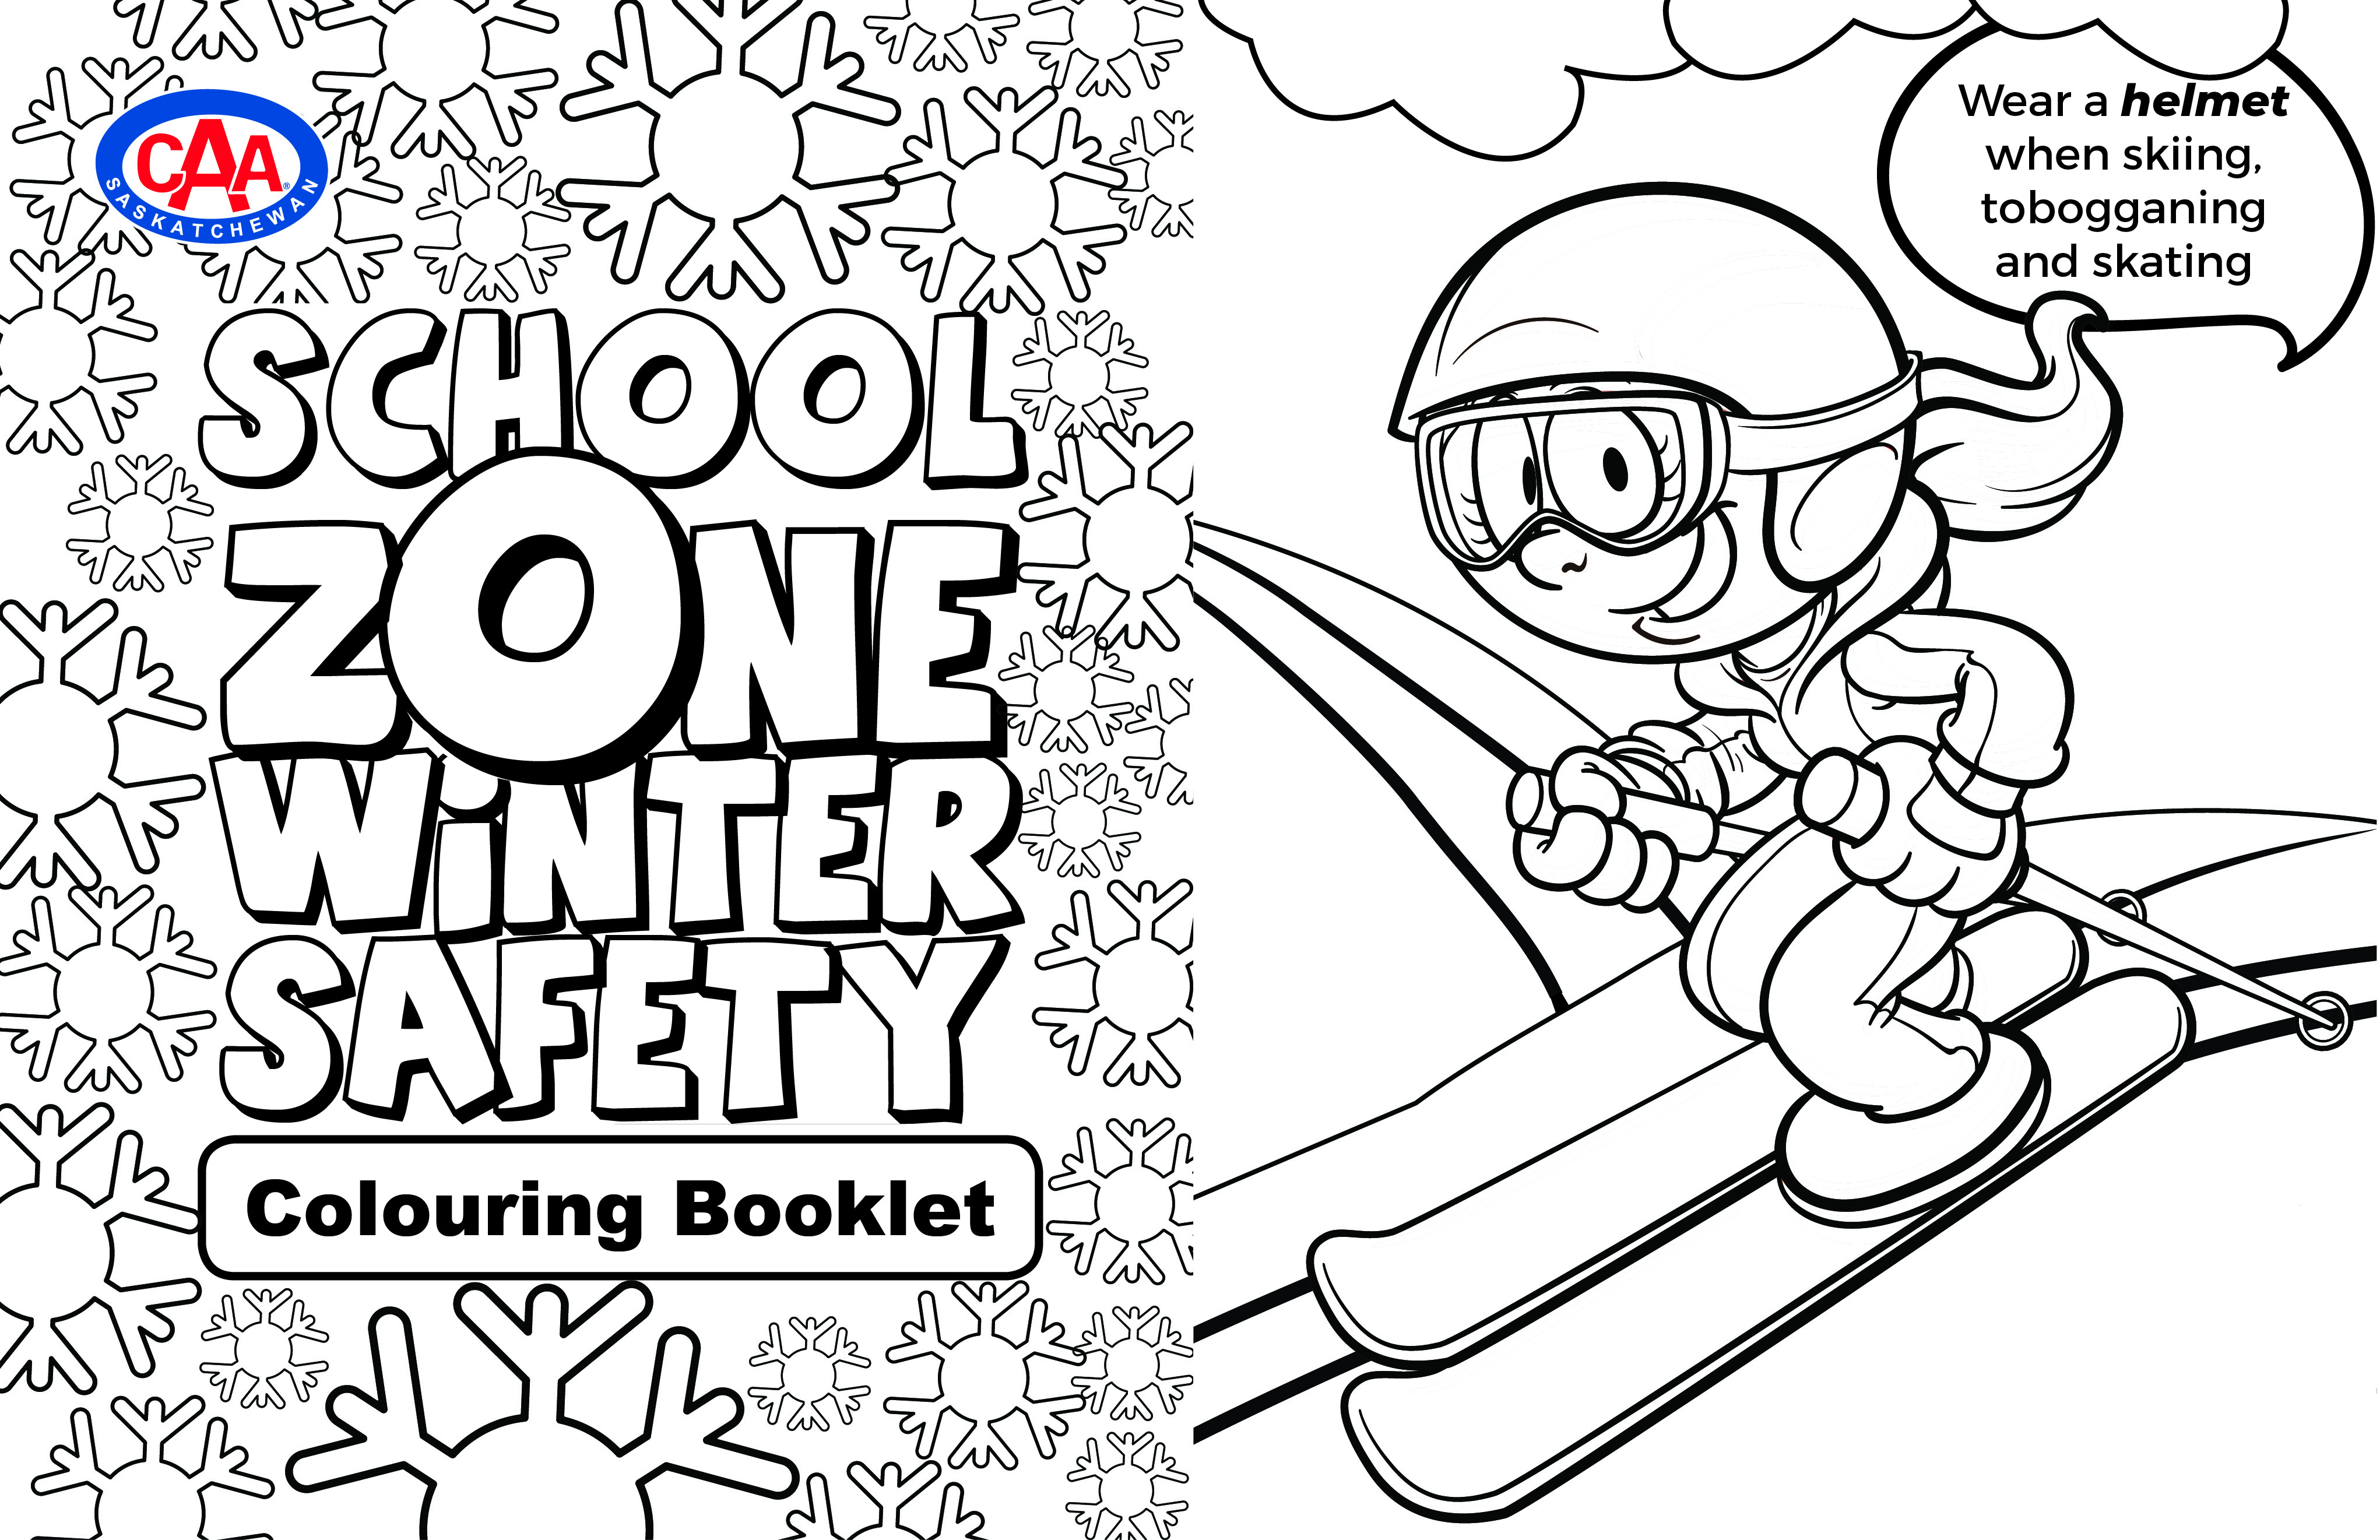 colouring booklet